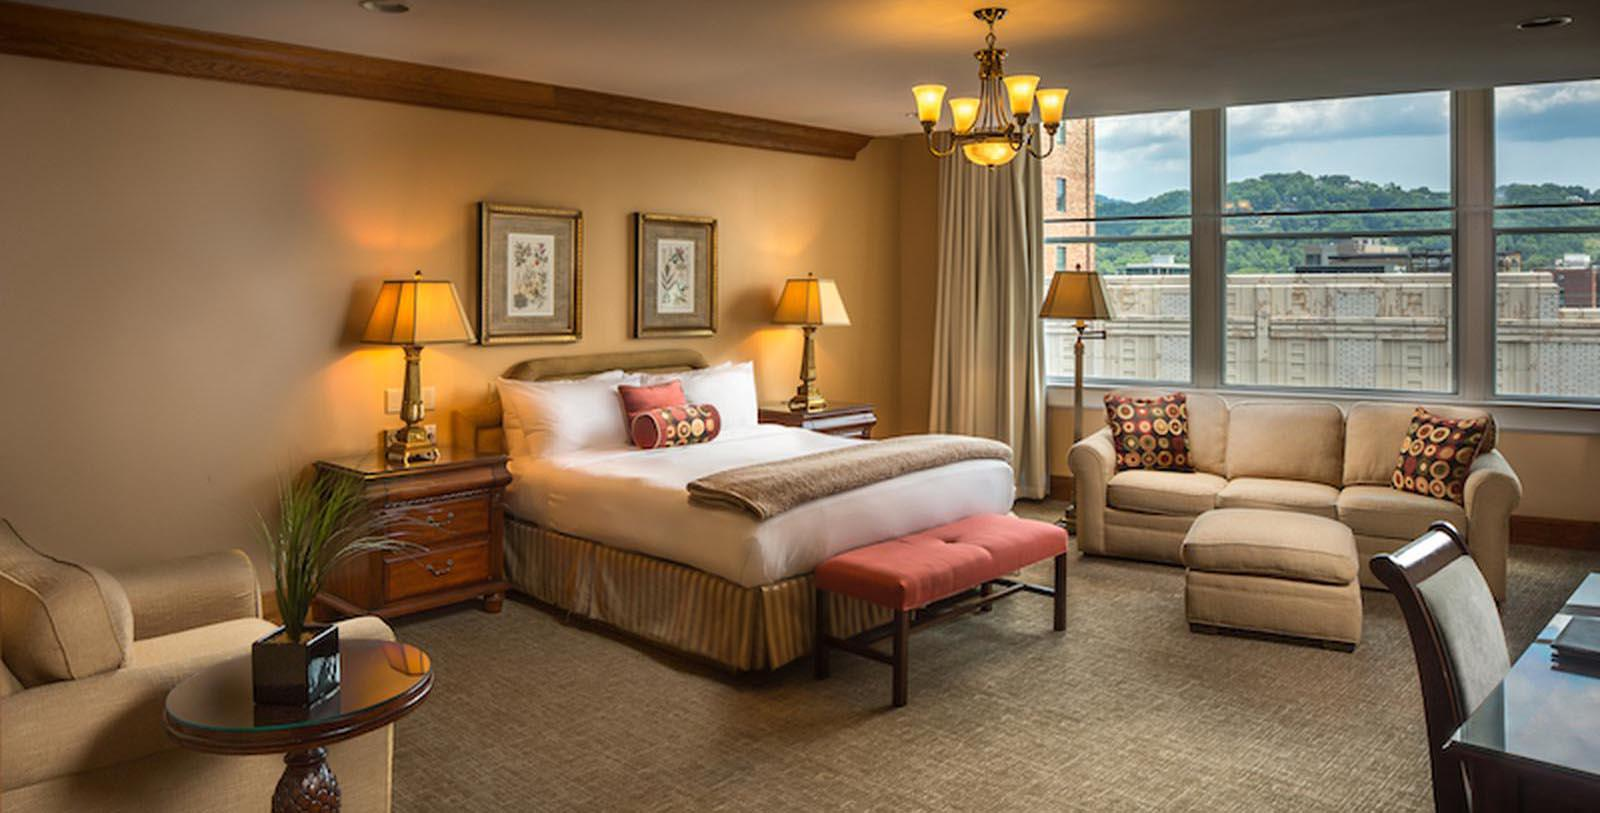 Image of Guestroom Haywood Park, 1923, Member of Historic Hotels of America, in Asheville, North Carolina, Accommodations